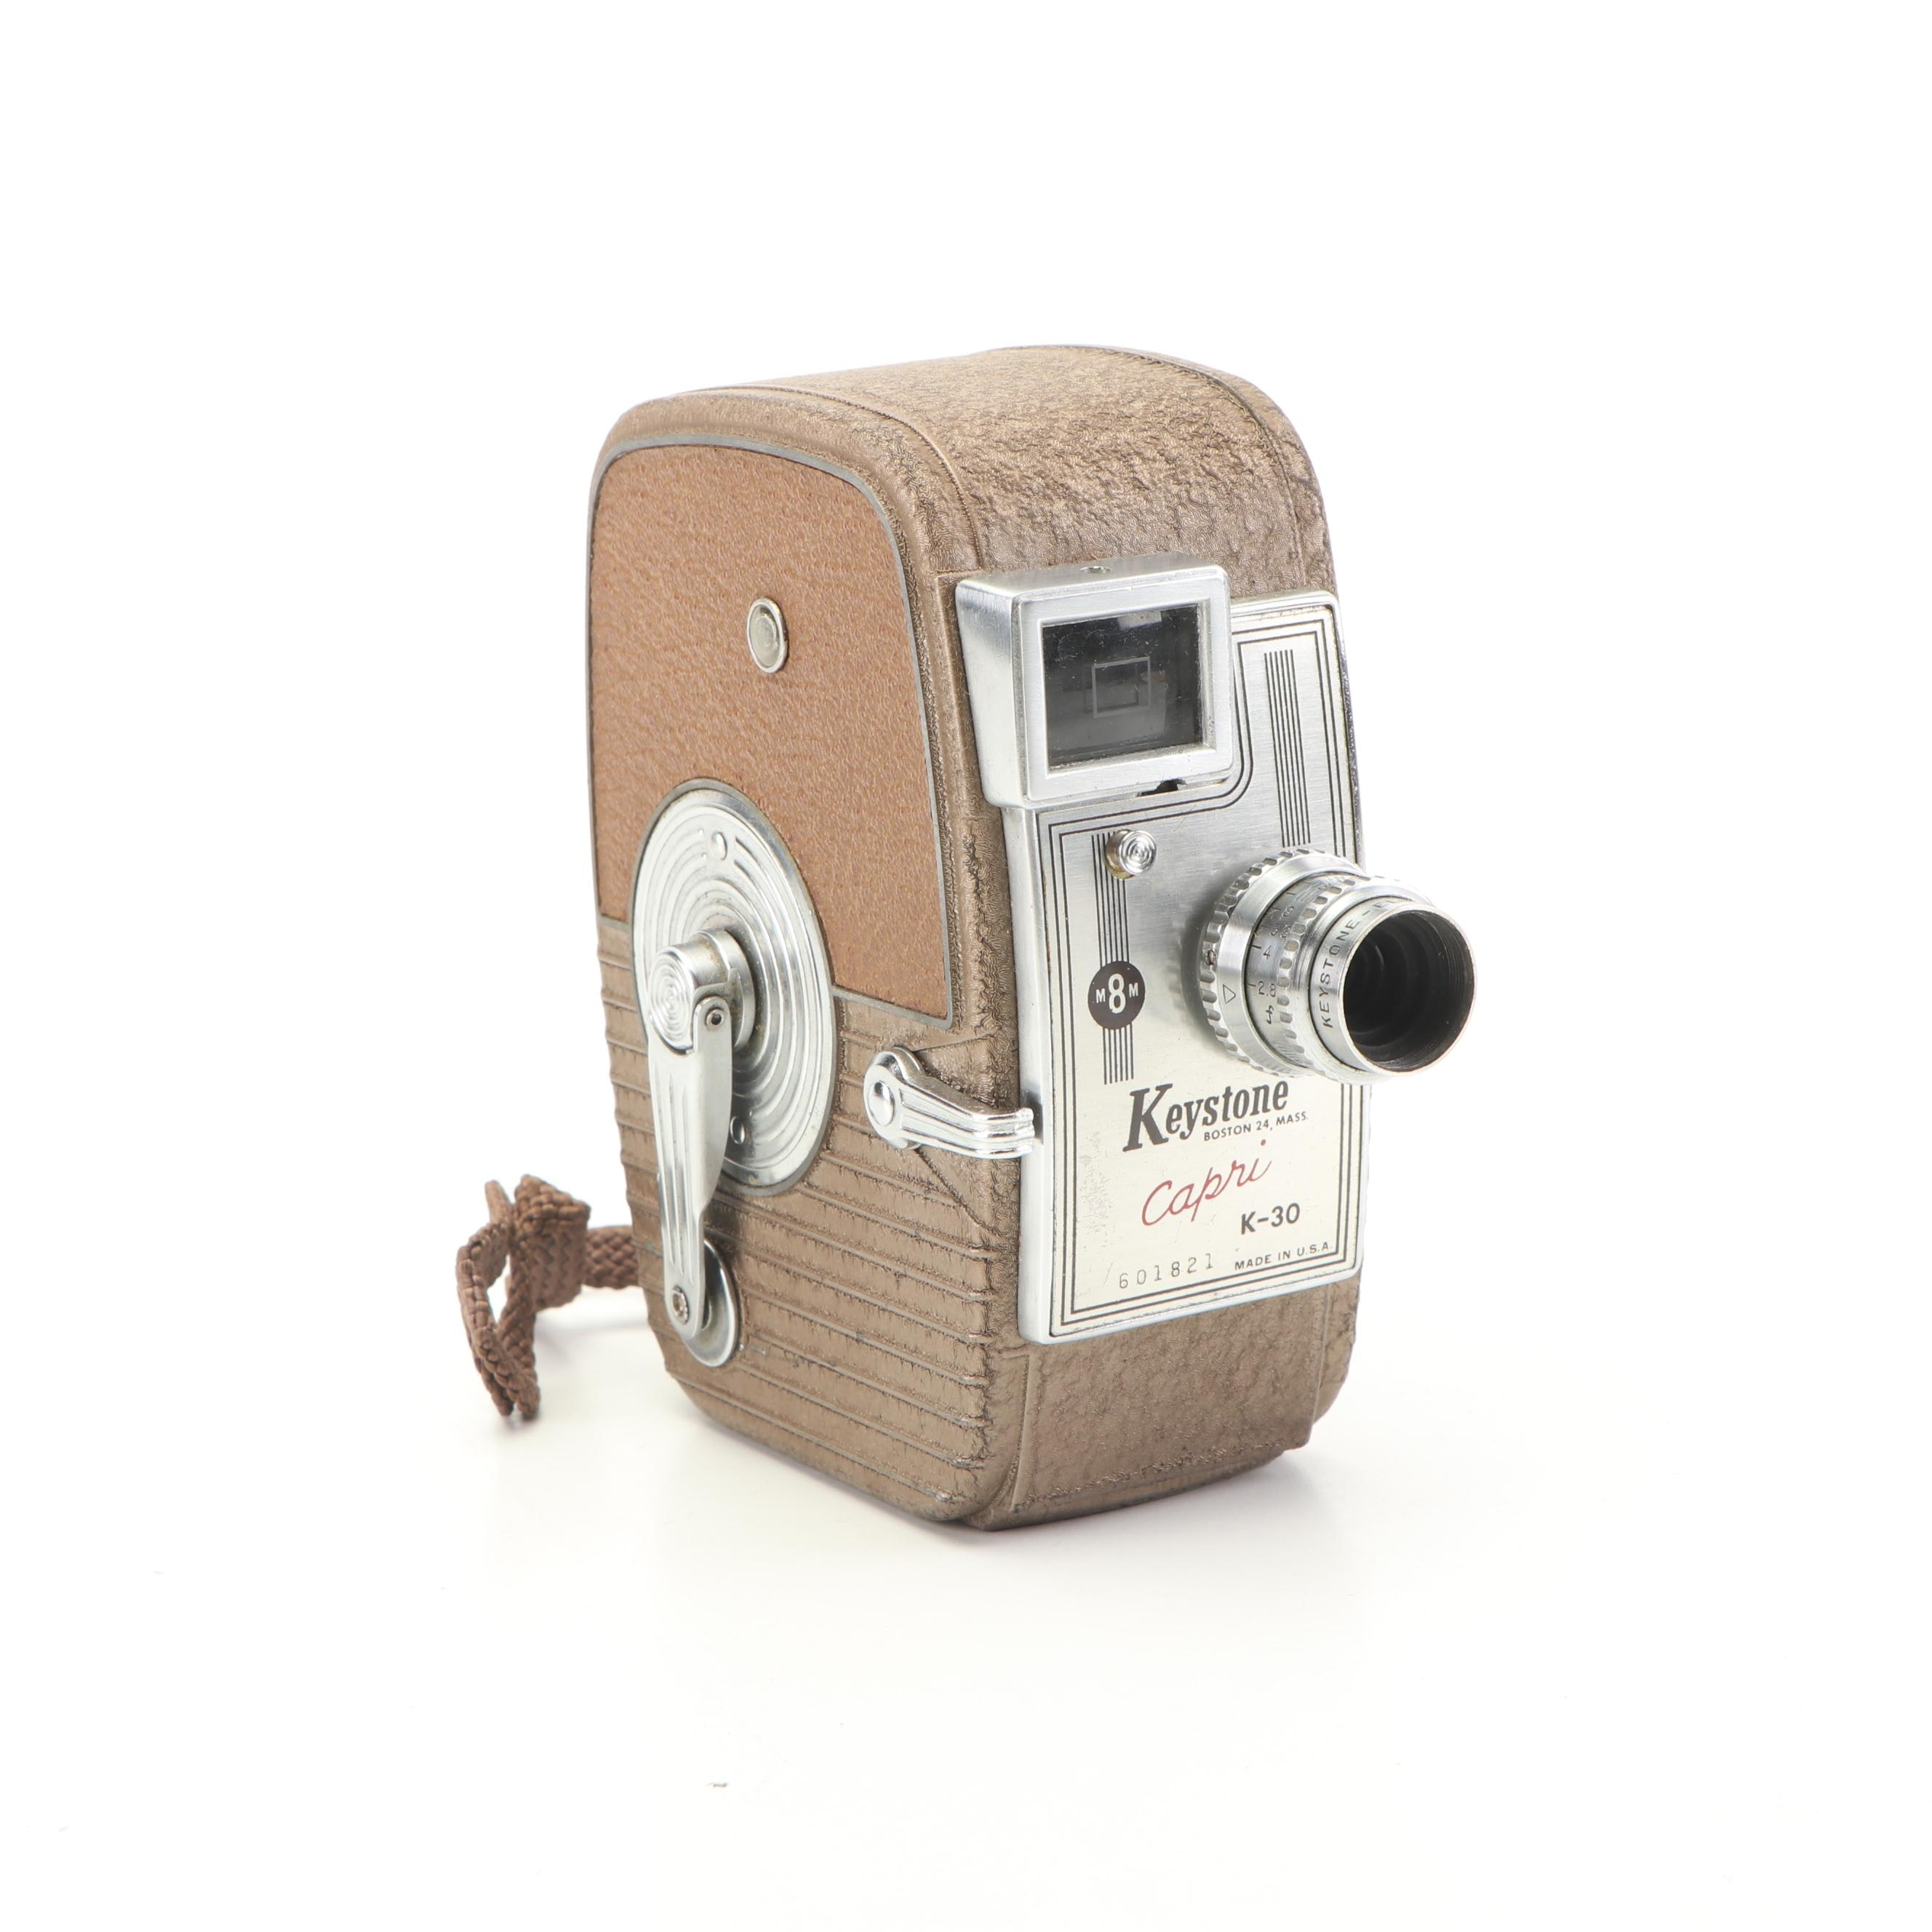 Keystone Capri K-30 8mm Movie Camera